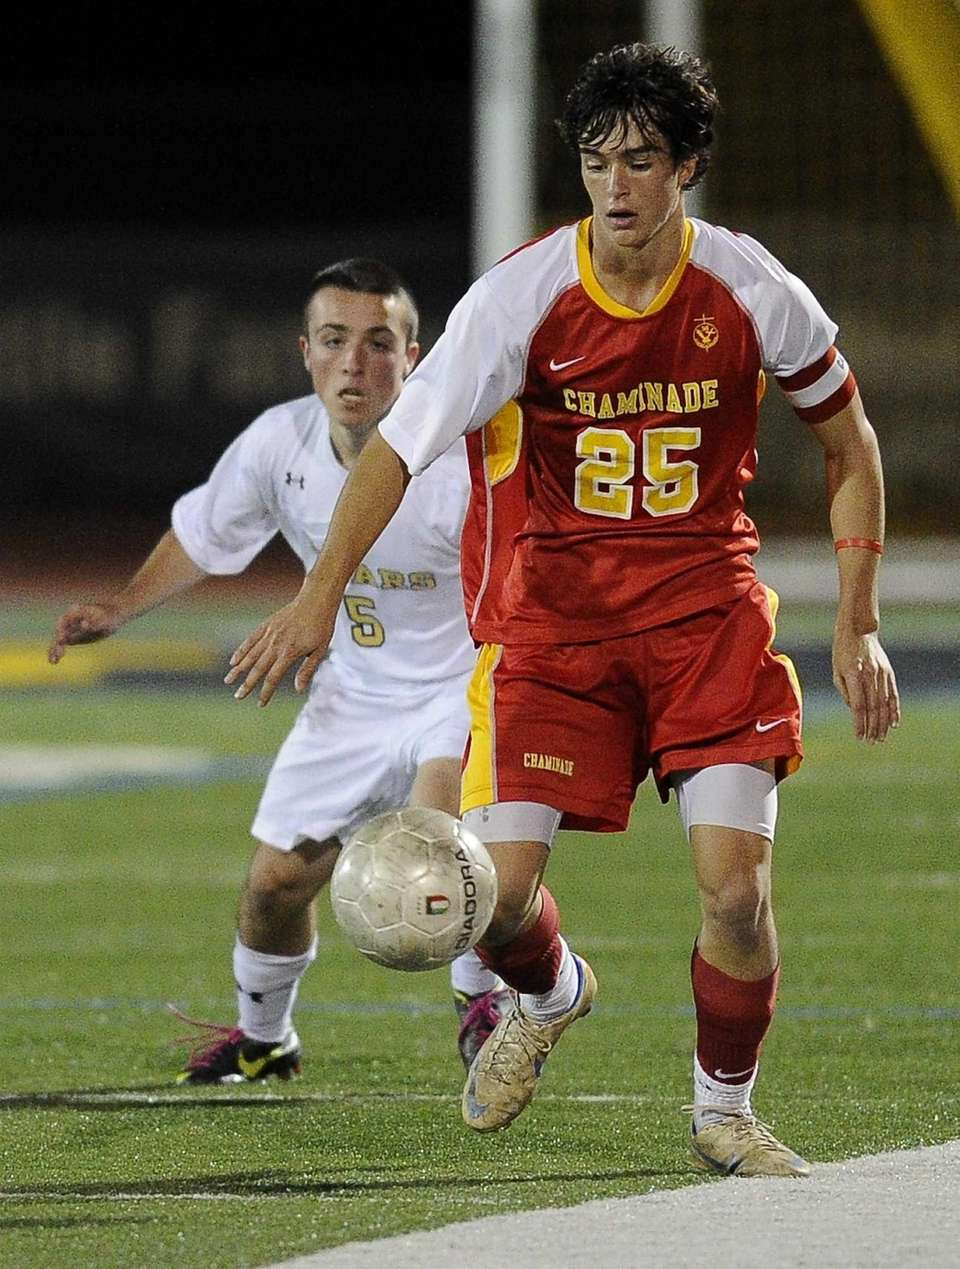 Chaminade's Joseph Randazzo controls the ball ahead of